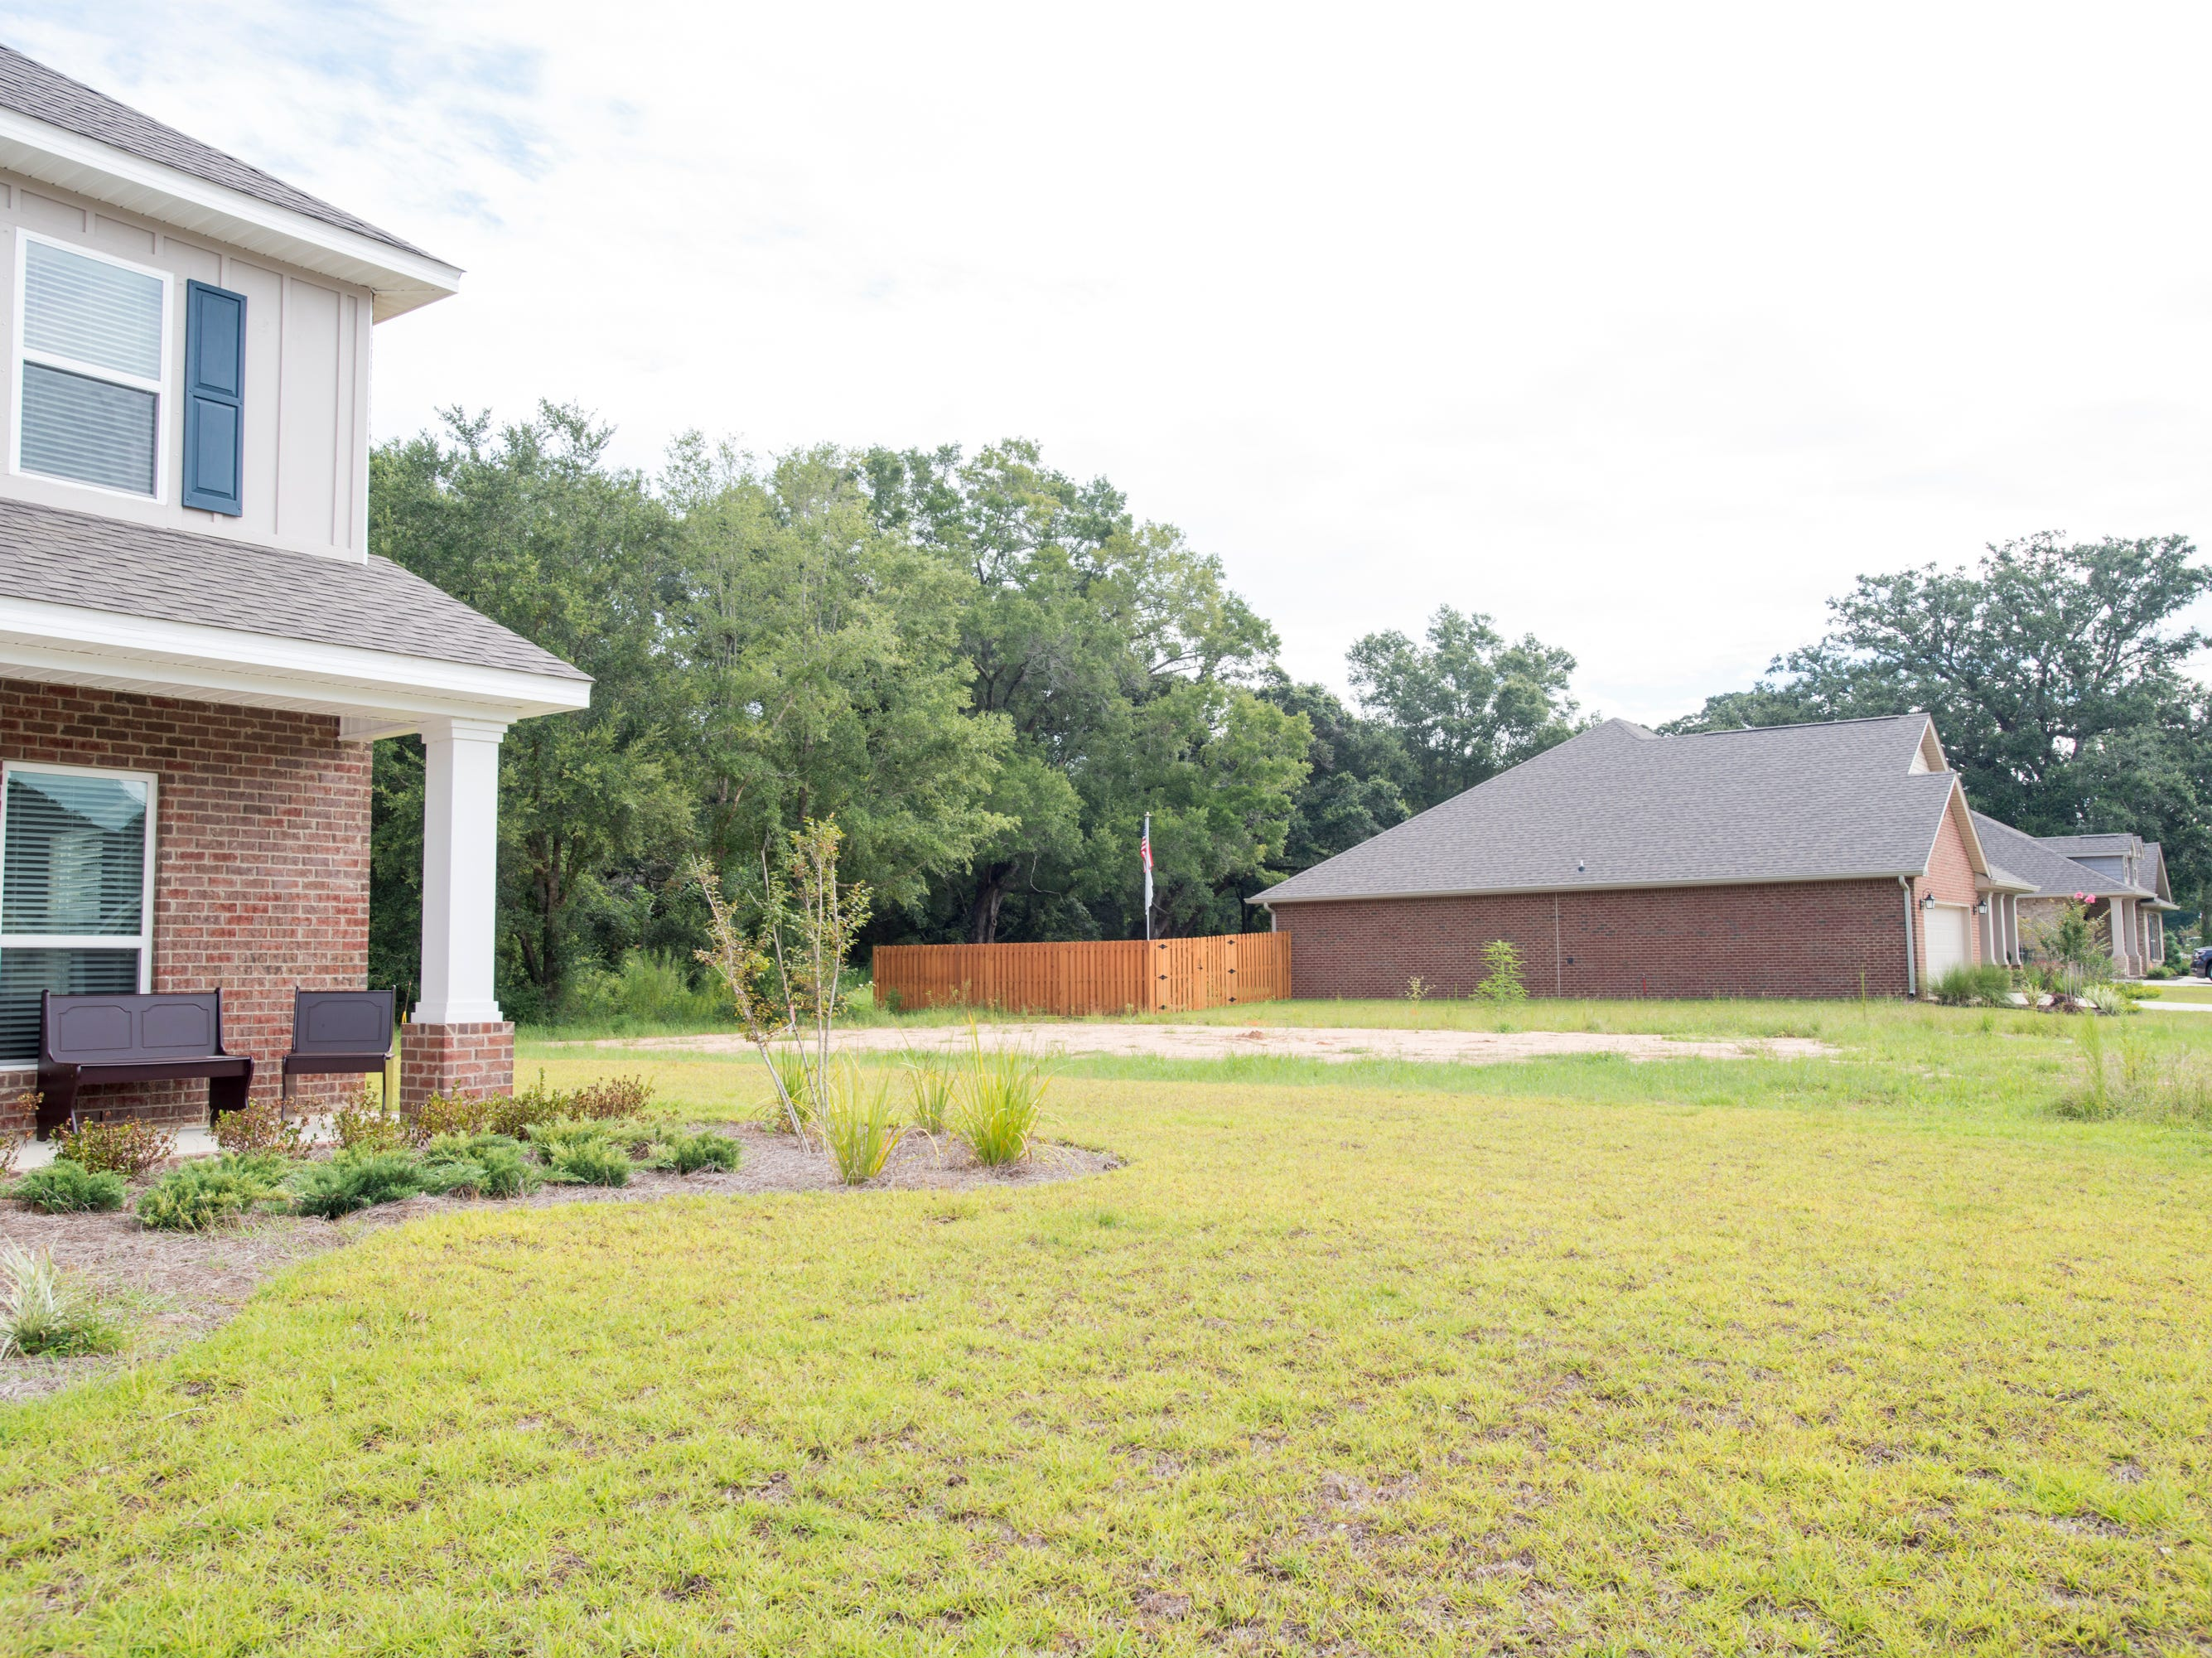 An empty lot between two houses remains undeveloped in the new subdivision of Heritage Estates in Pace's District 1 on Tuesday, August 7, 2018.